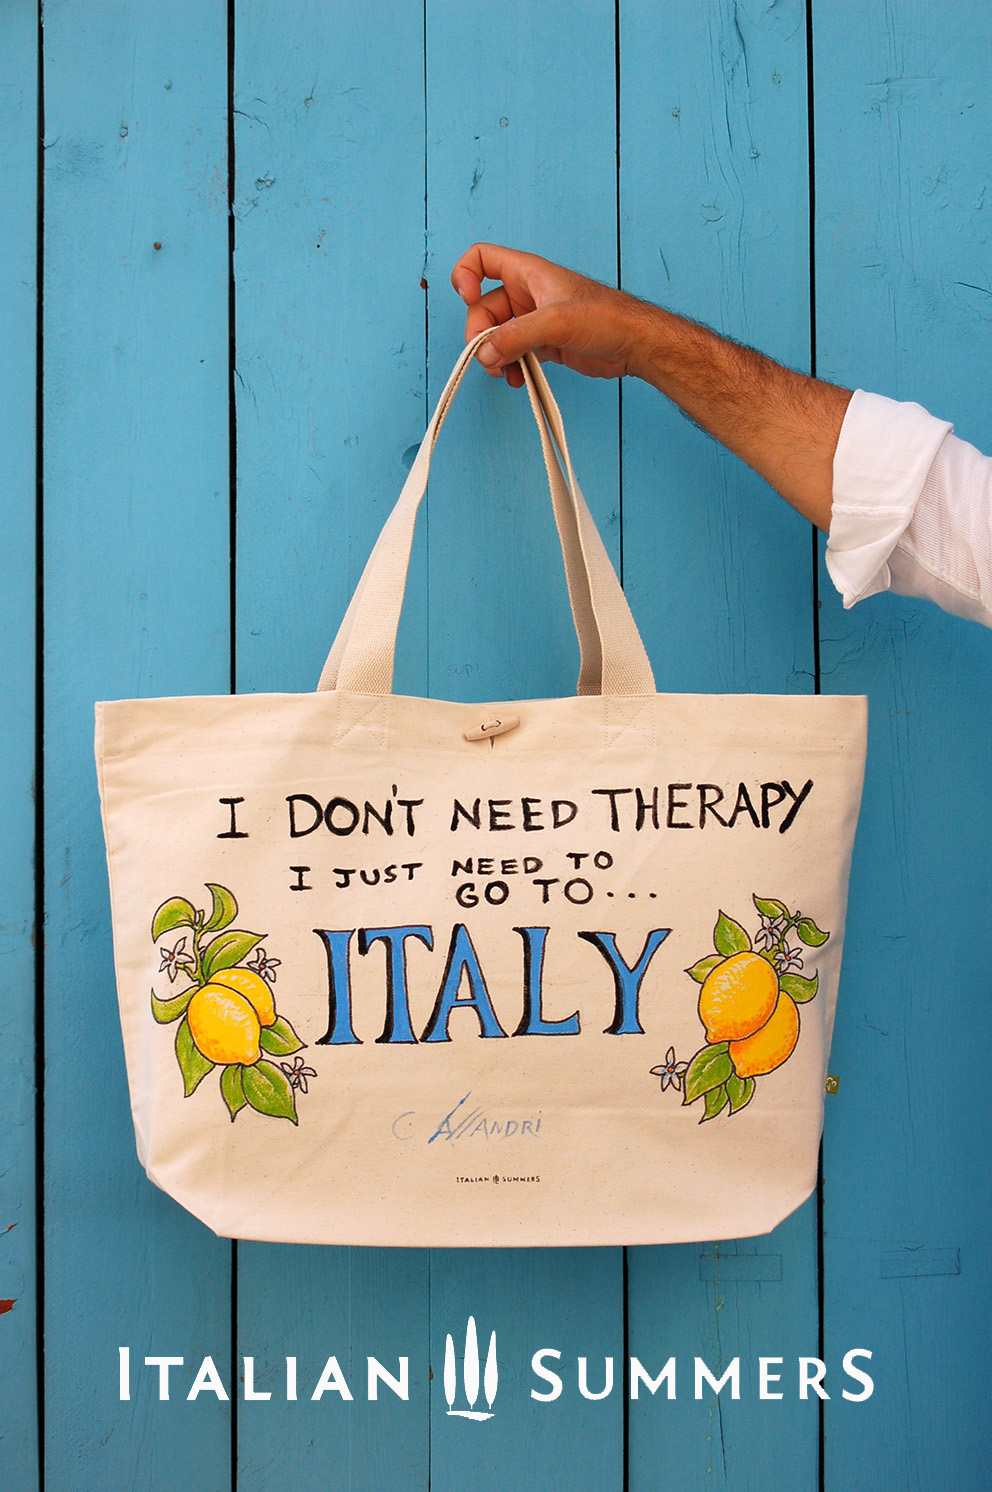 I DON'T NEED THERAPY, I JUST NEED TO GO TO ITALY Shopper tote bag by Italian Summers